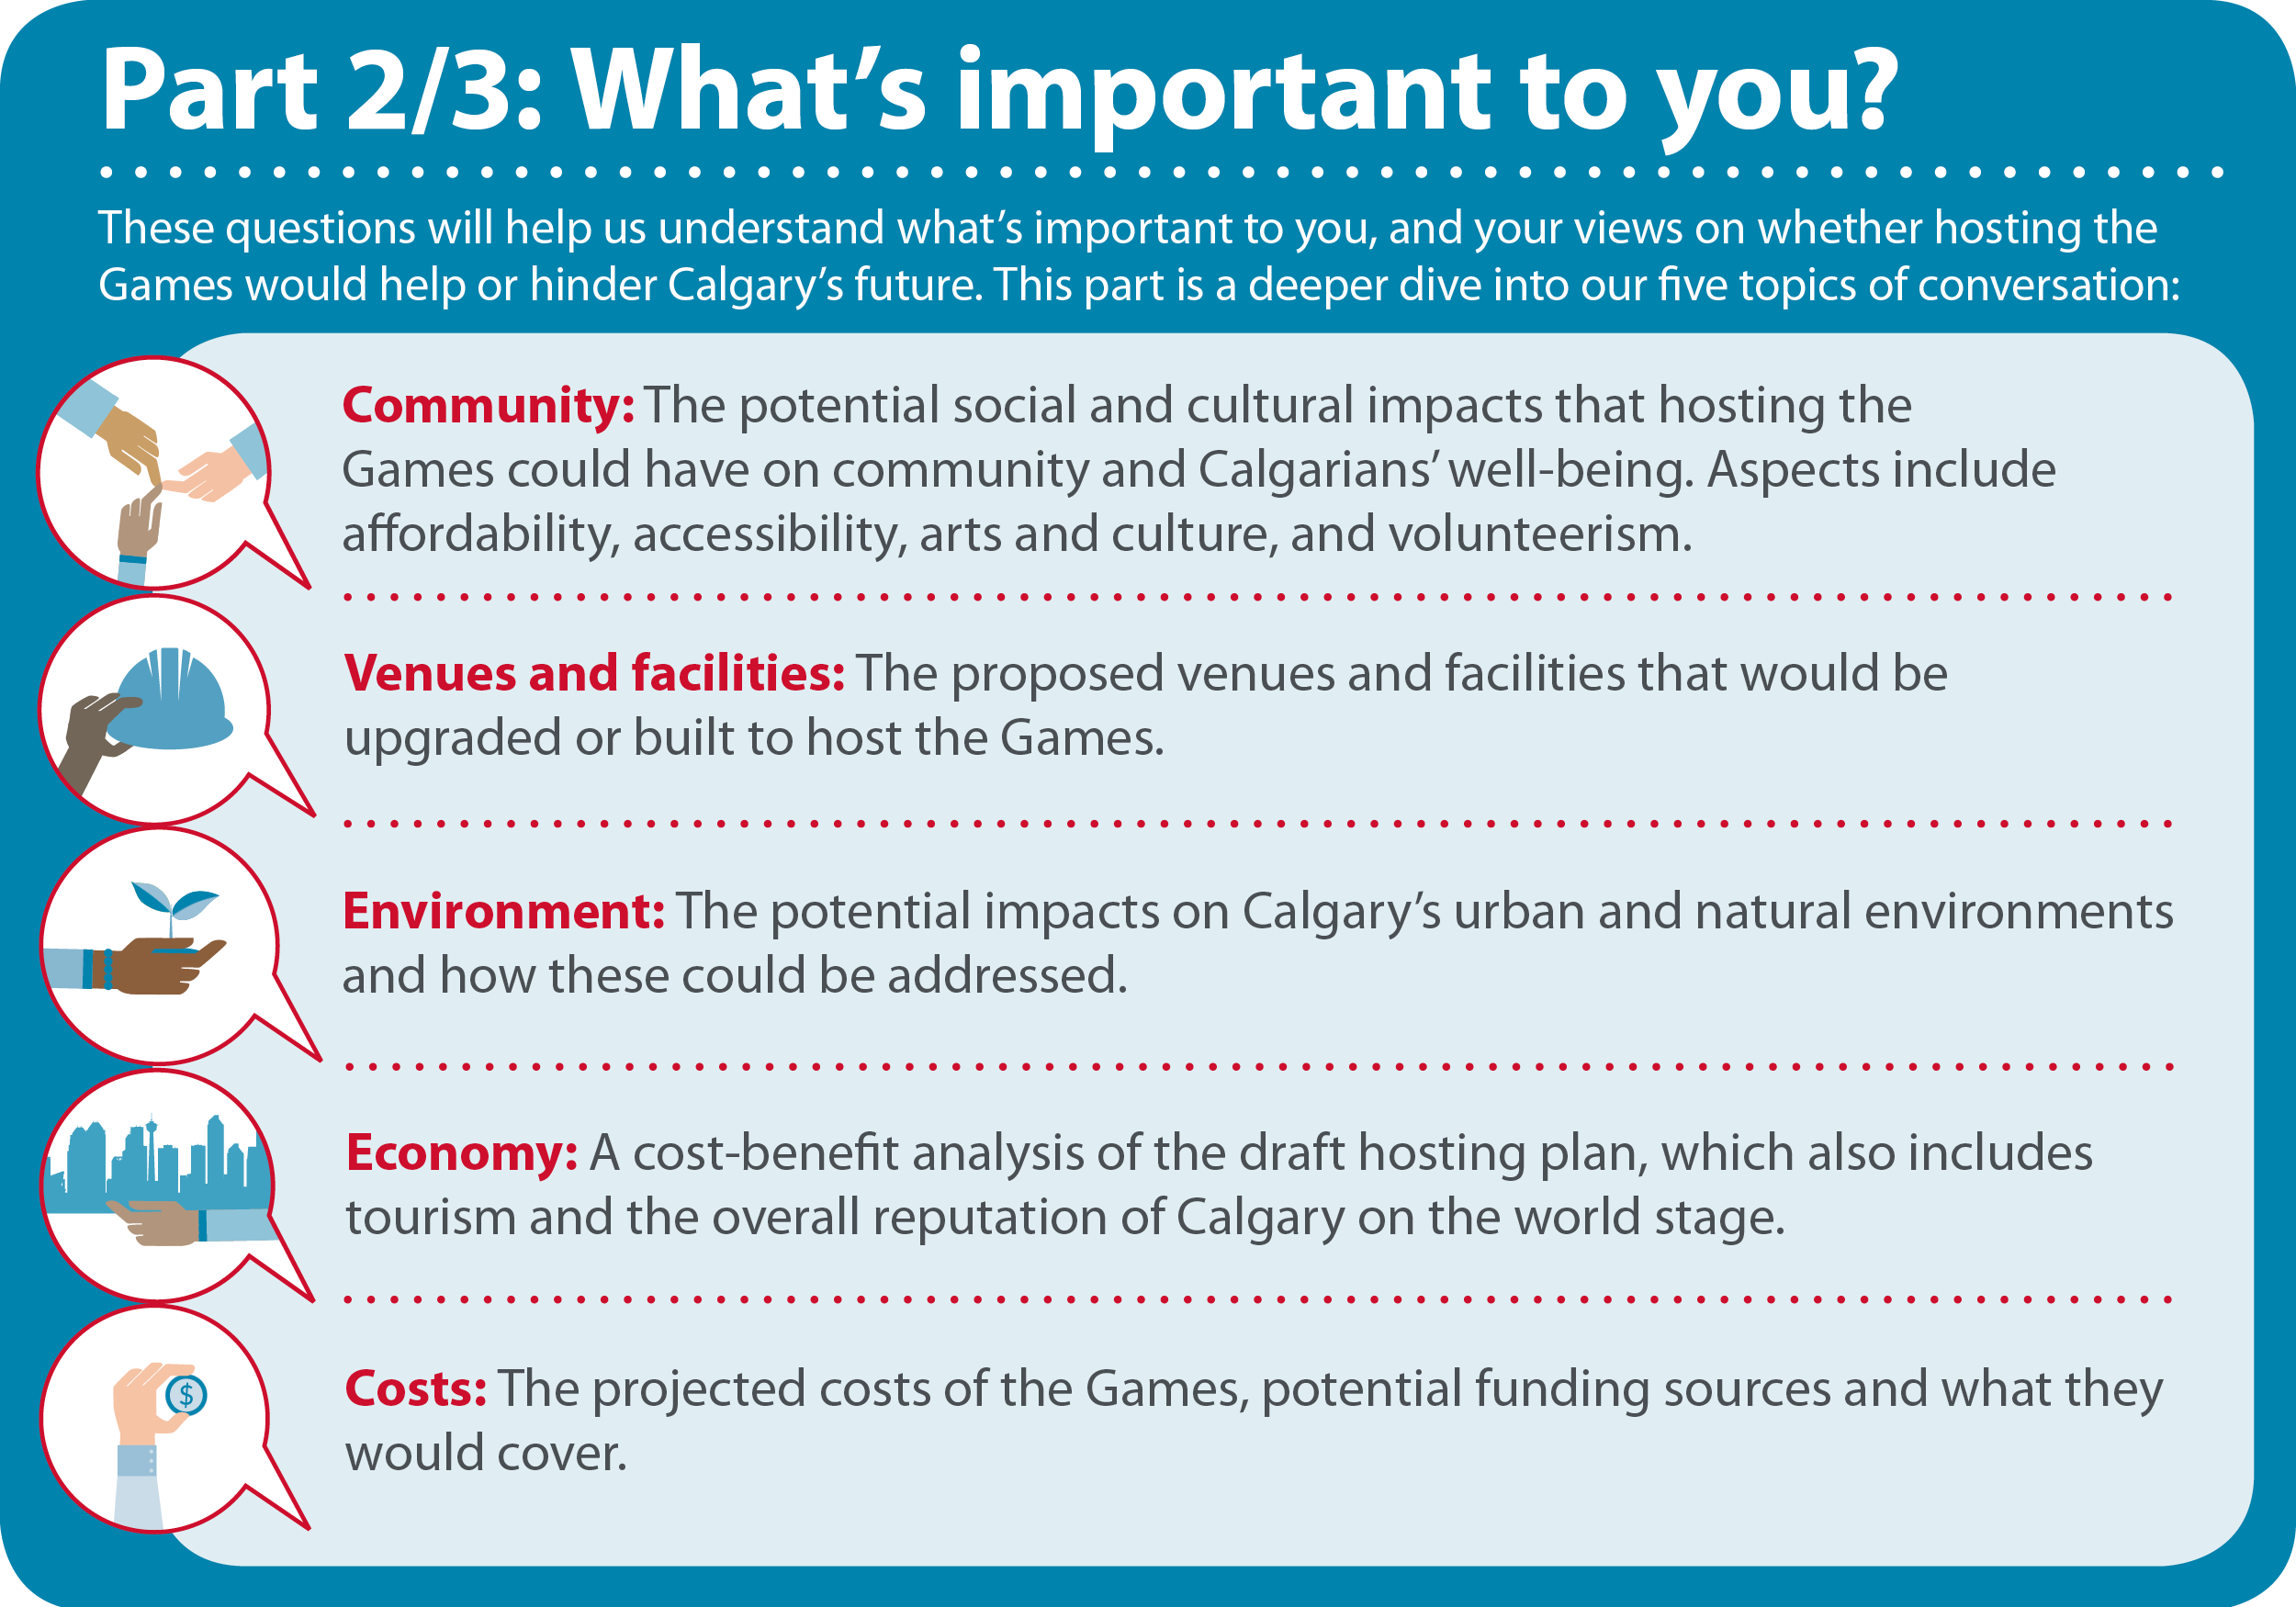 Part 2/3: These questions will help us understand what's important to you and focuses on 5 topics: Community, Venues and Facilities, Environment, Economy, and Costs